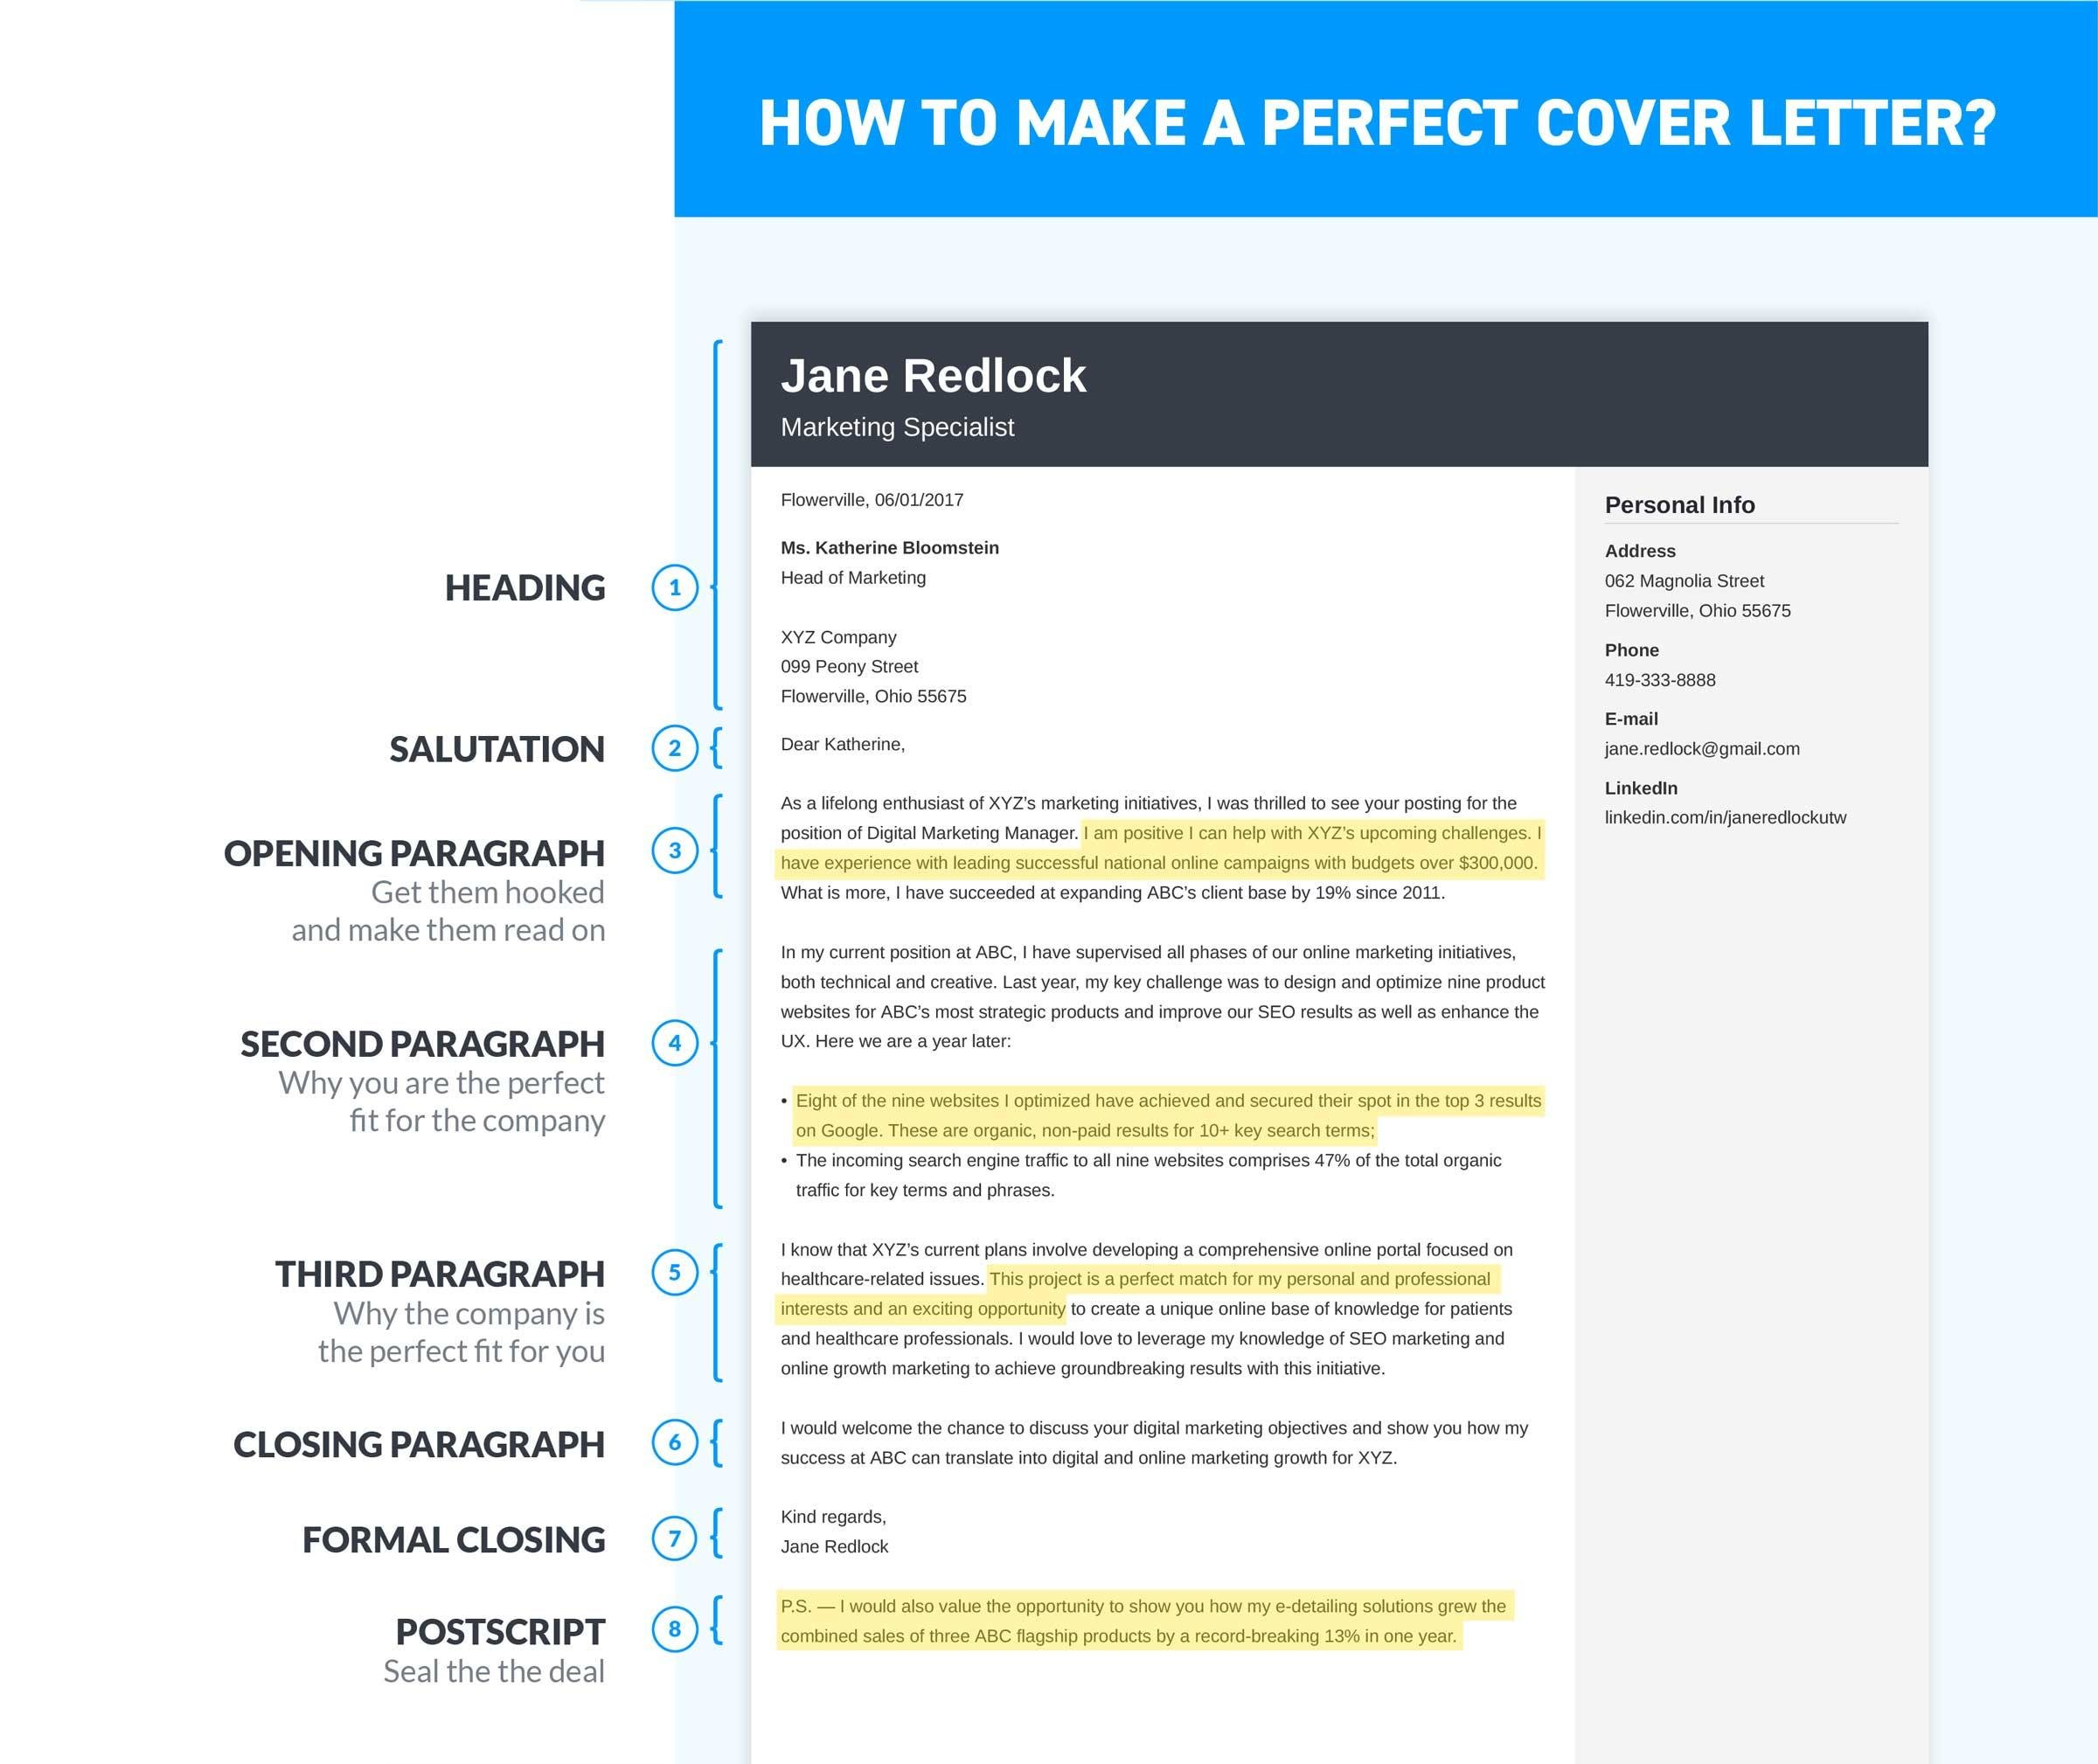 How To Make A Perfect Cover Letter Infographic  How To Do A Resume Cover Letter